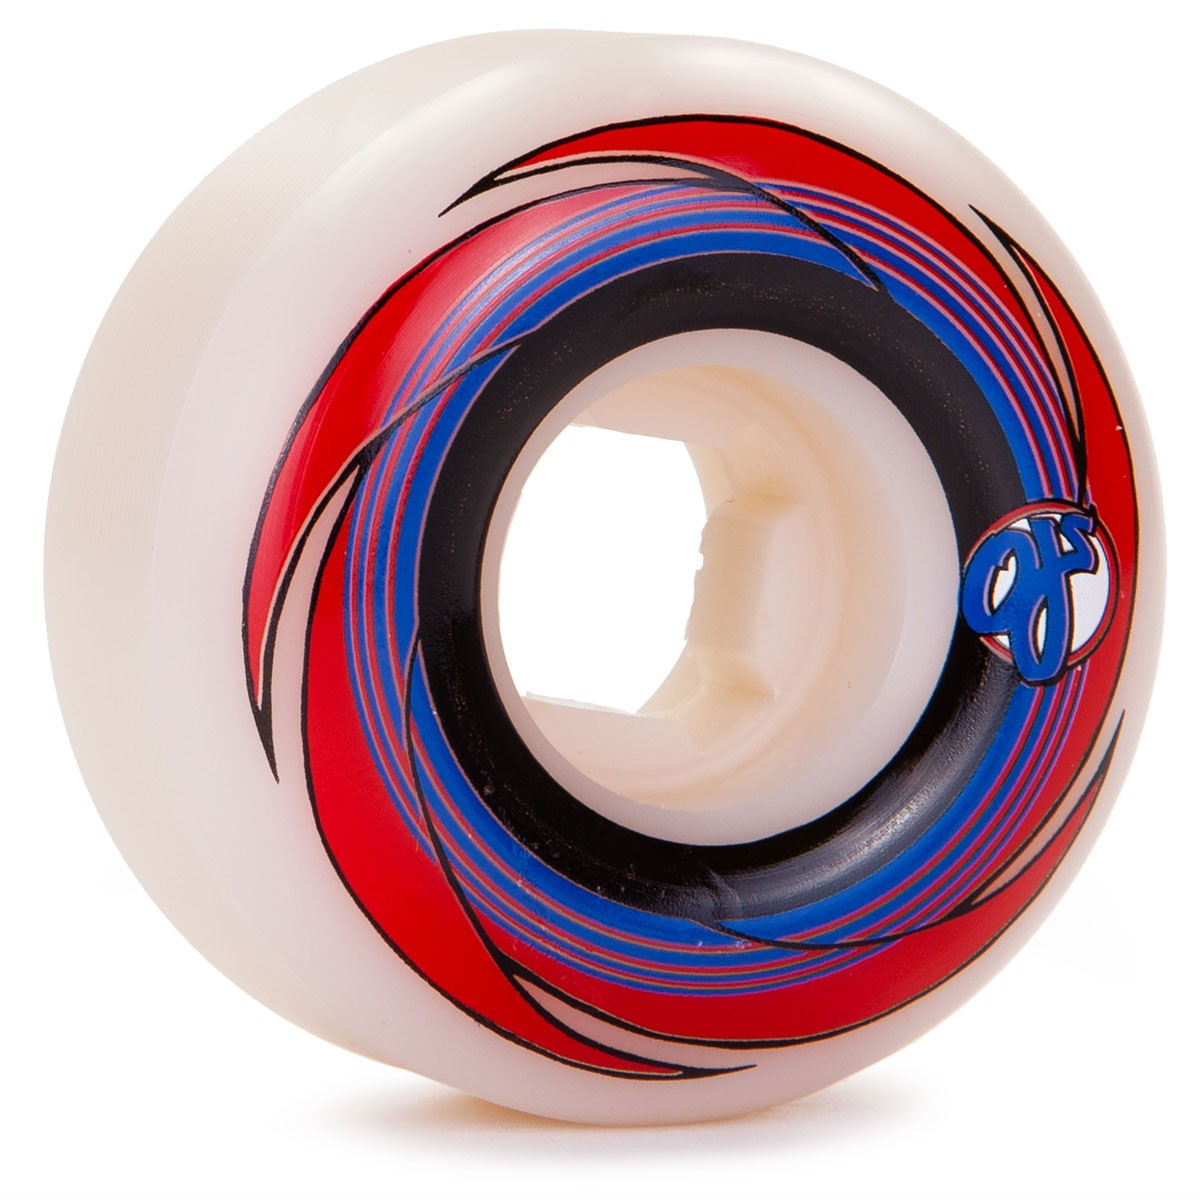 OJ Geoff Rowley Skateboard Wheels - 53mm - 100a